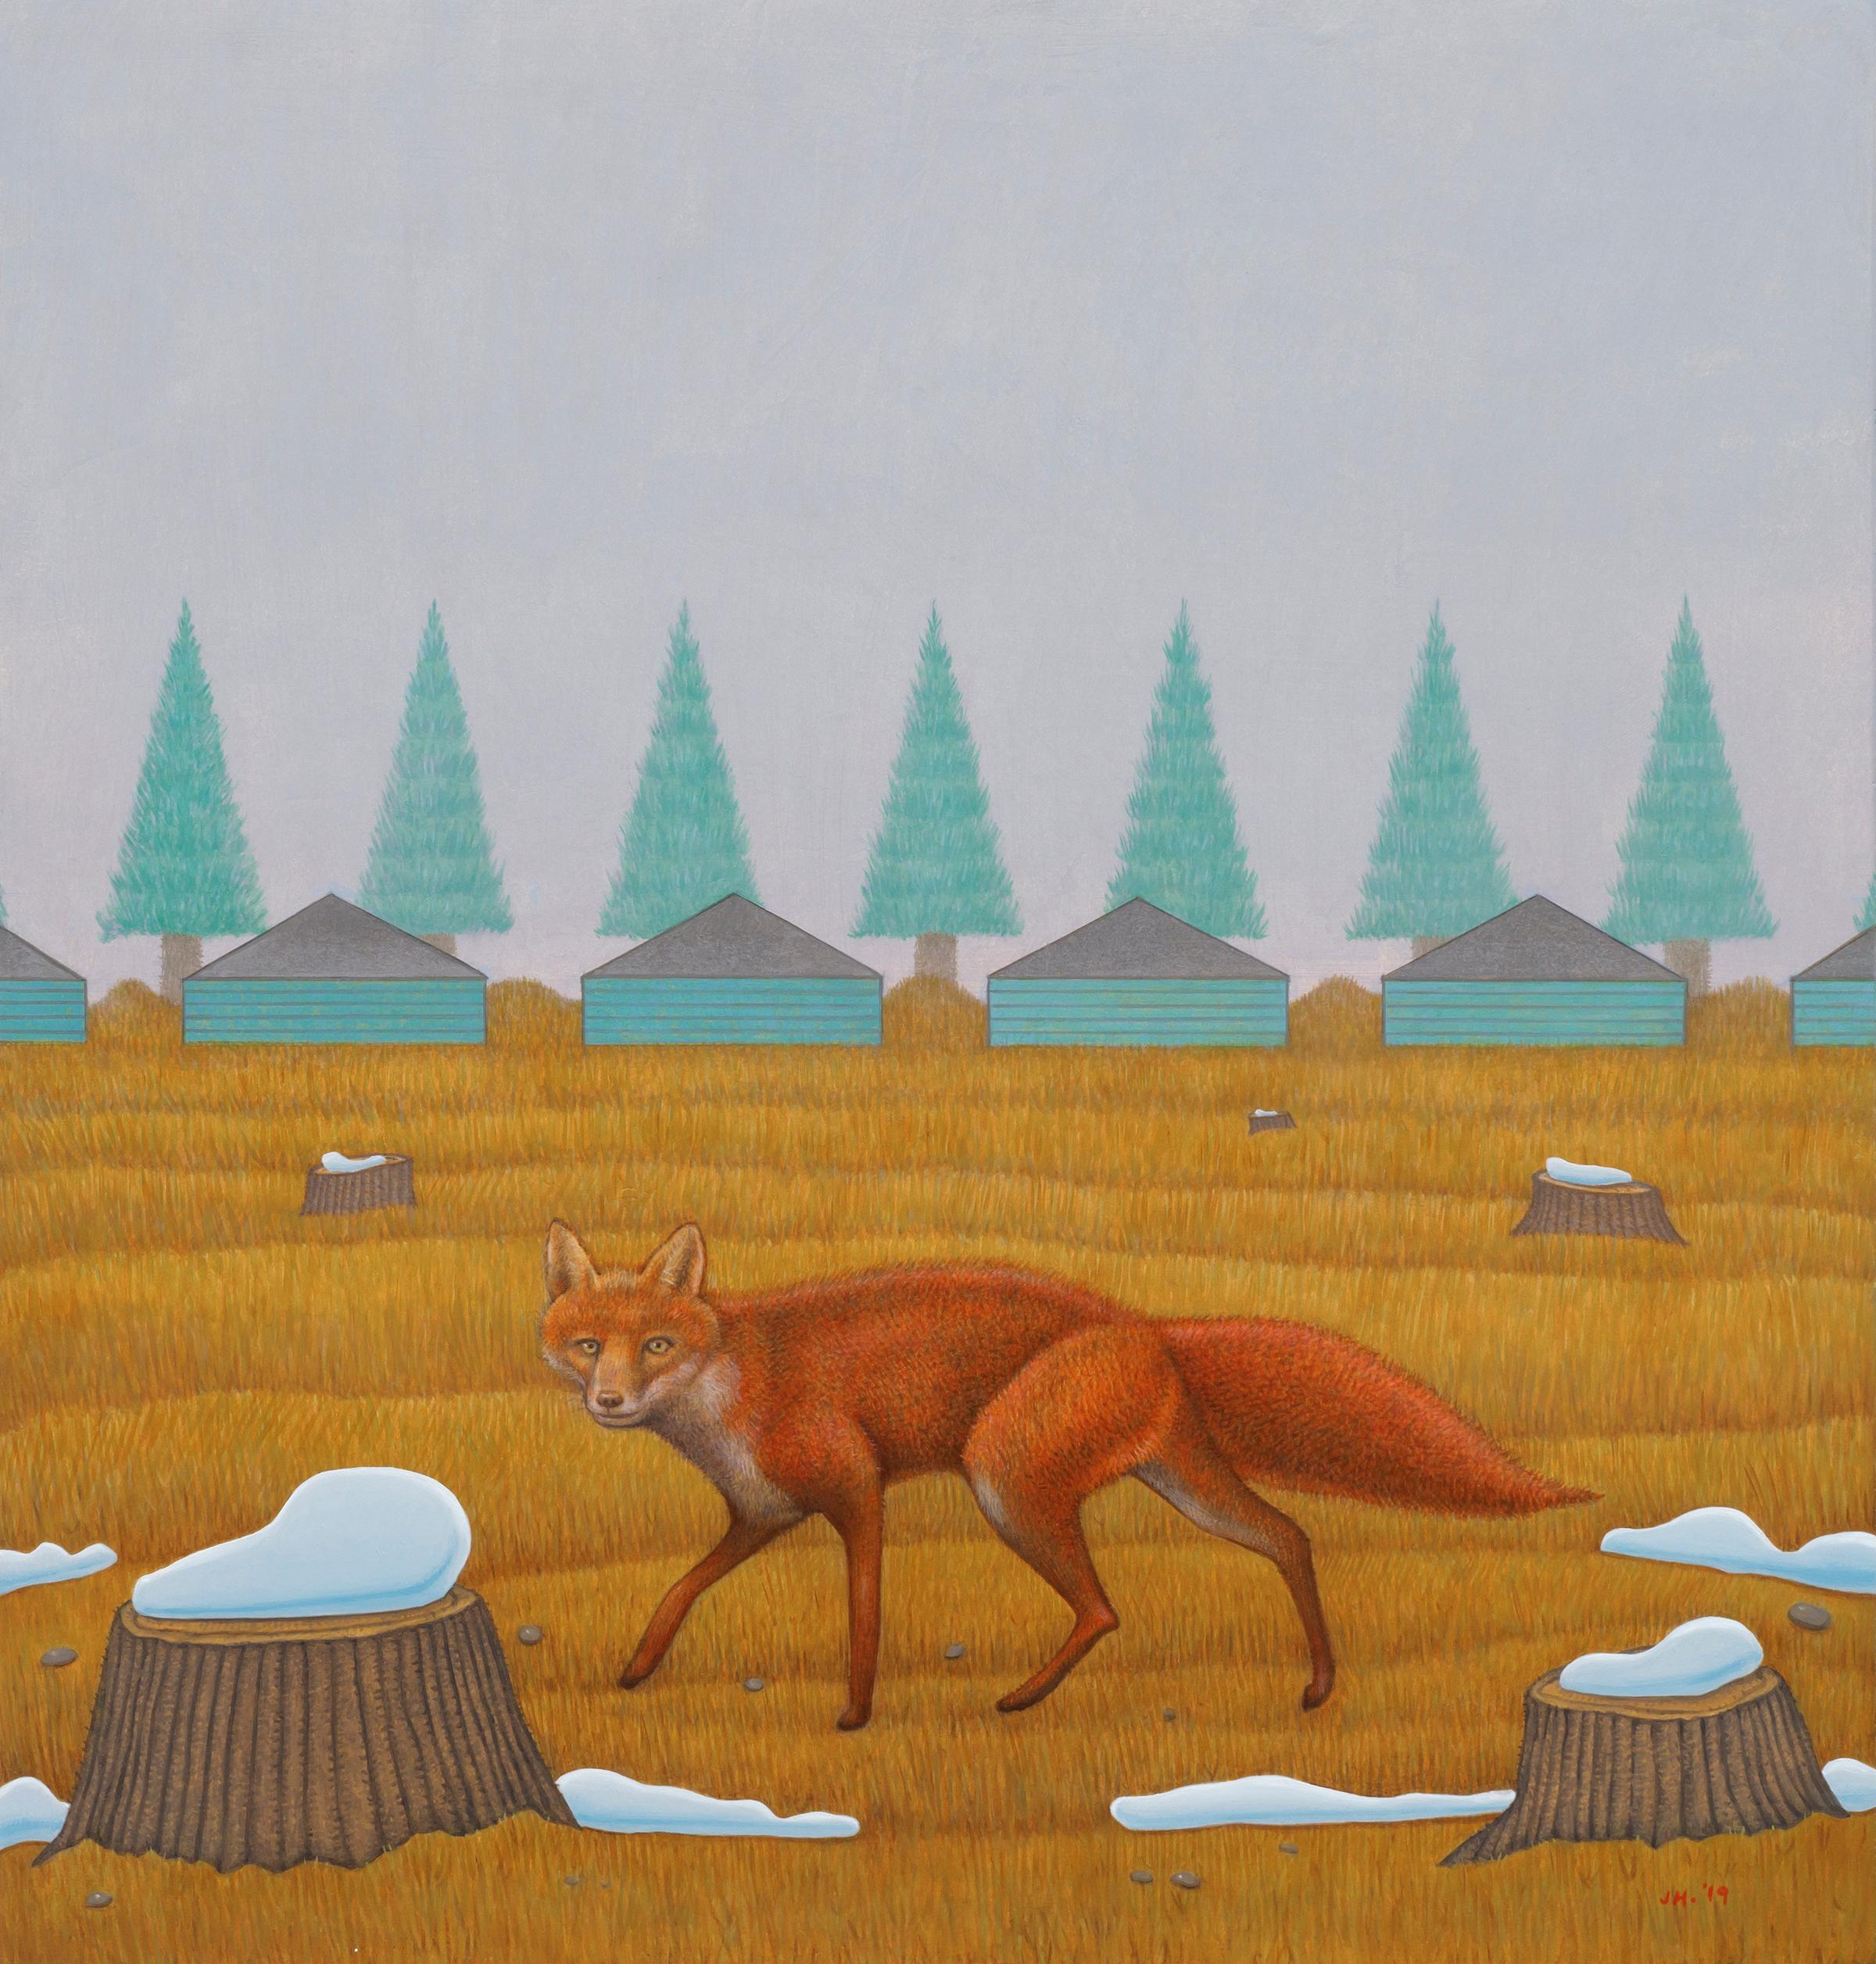 Scout - Painting of a Fox Hunting in a Sparse Landscape, Oil on Panel